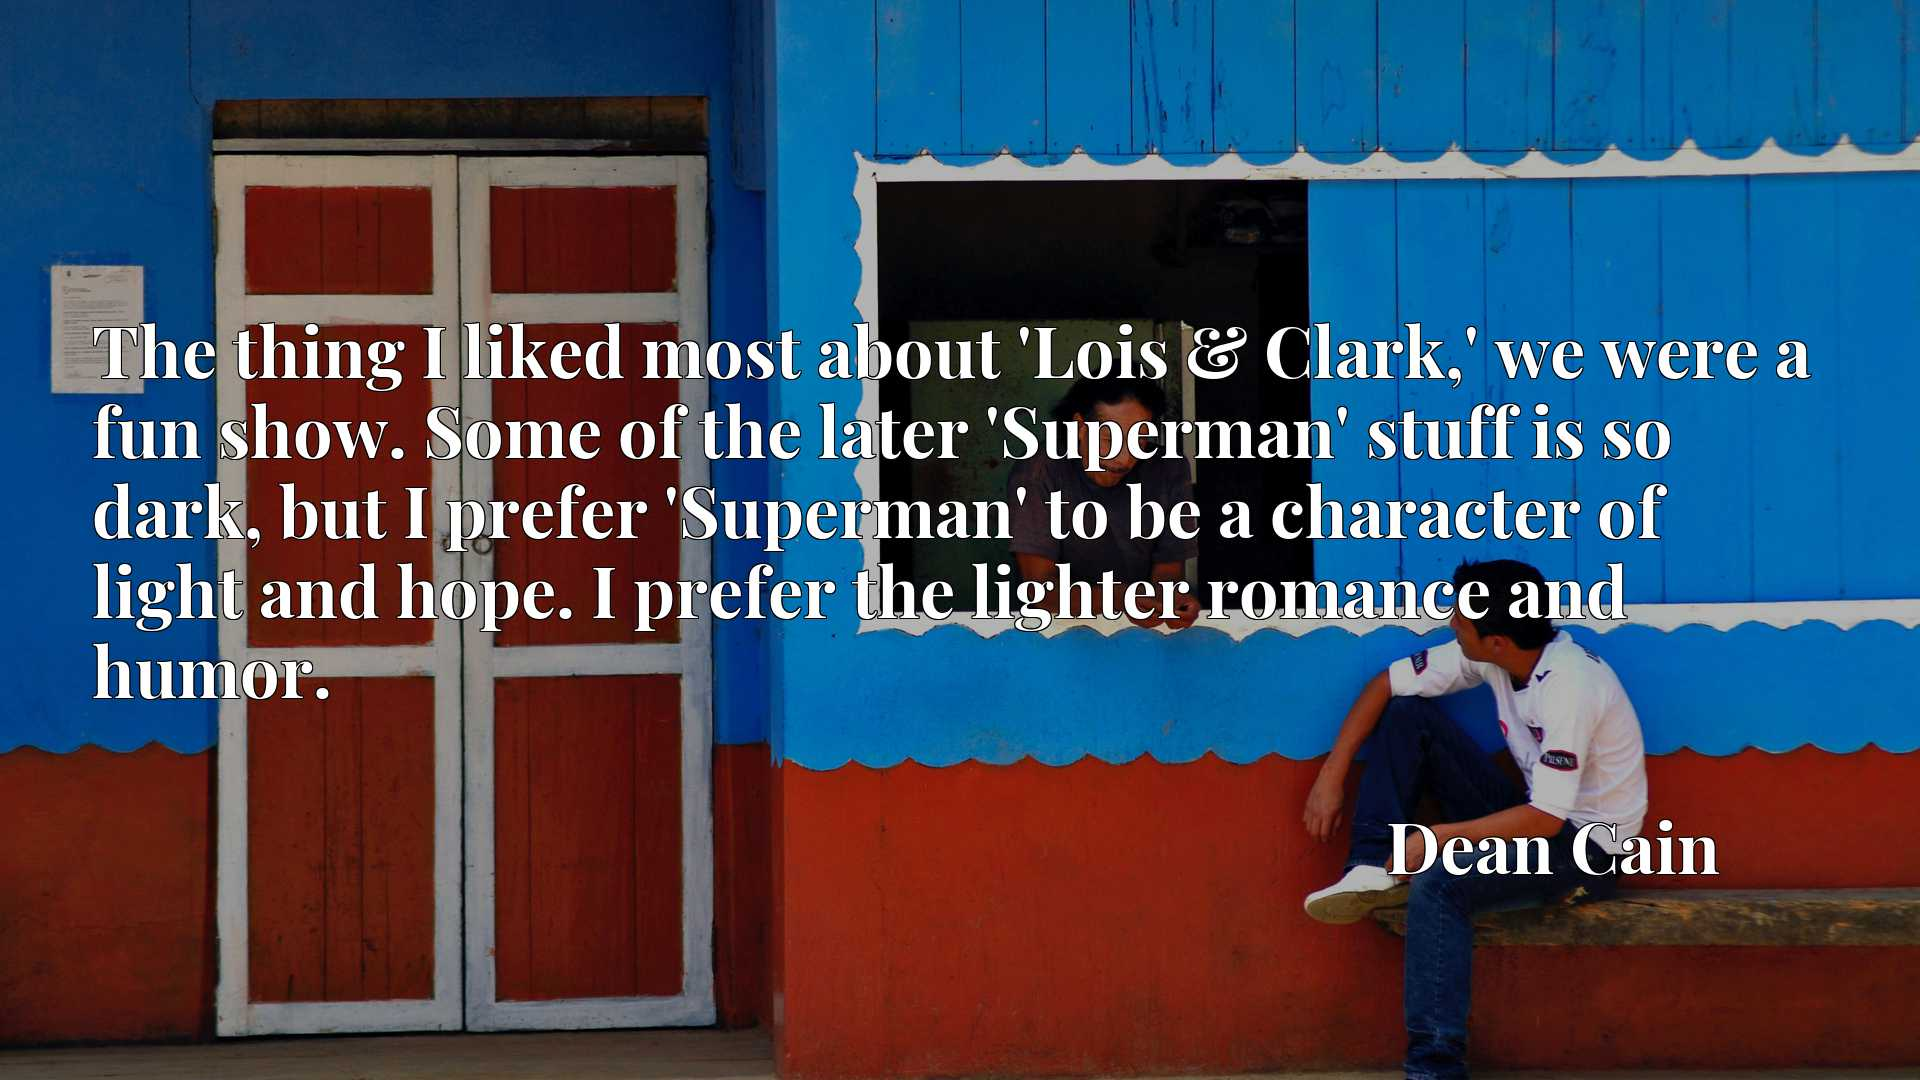 The thing I liked most about 'Lois & Clark,' we were a fun show. Some of the later 'Superman' stuff is so dark, but I prefer 'Superman' to be a character of light and hope. I prefer the lighter romance and humor.